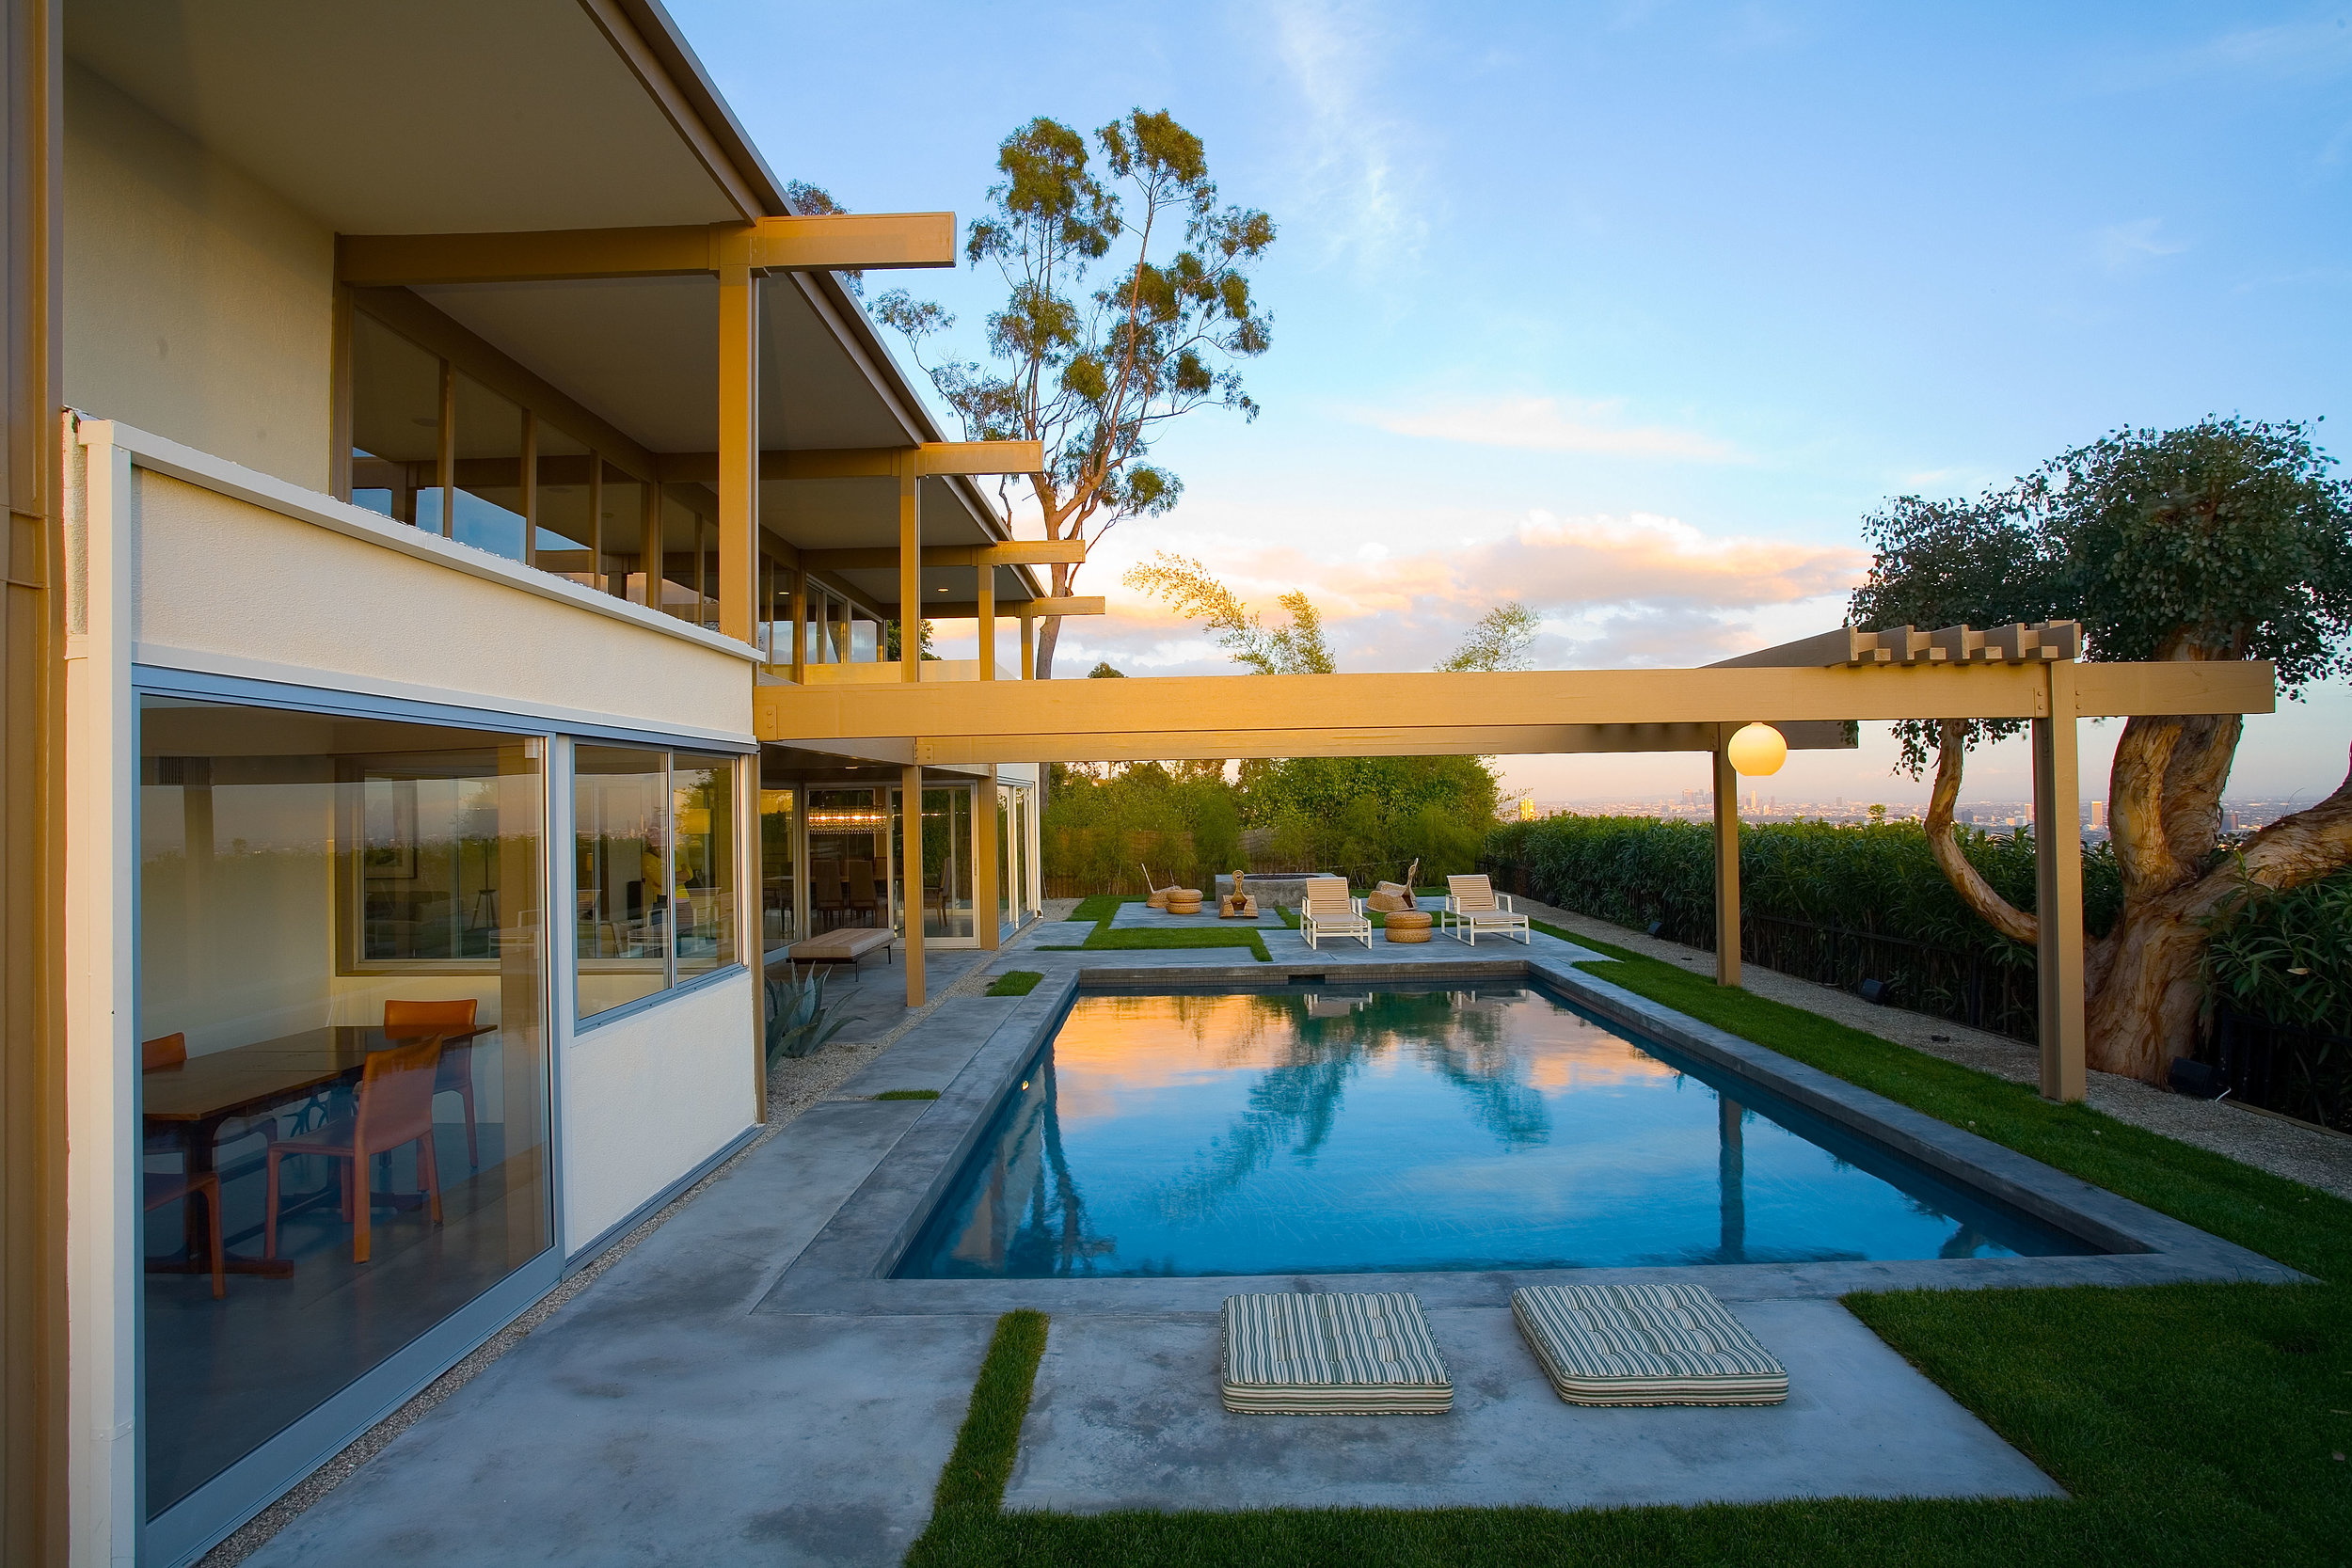 S.E.A.-Studio-Environmental-Architecture-David-Hertz-FAIA-Buff-Hensman-Bel-Air-historic-preservation-sustainable-regenerative-restorative-design-remodel-midcentury-modern-case-study-house-vintage-residential-contemporary-addition-hollywood-hills-pool.jpg